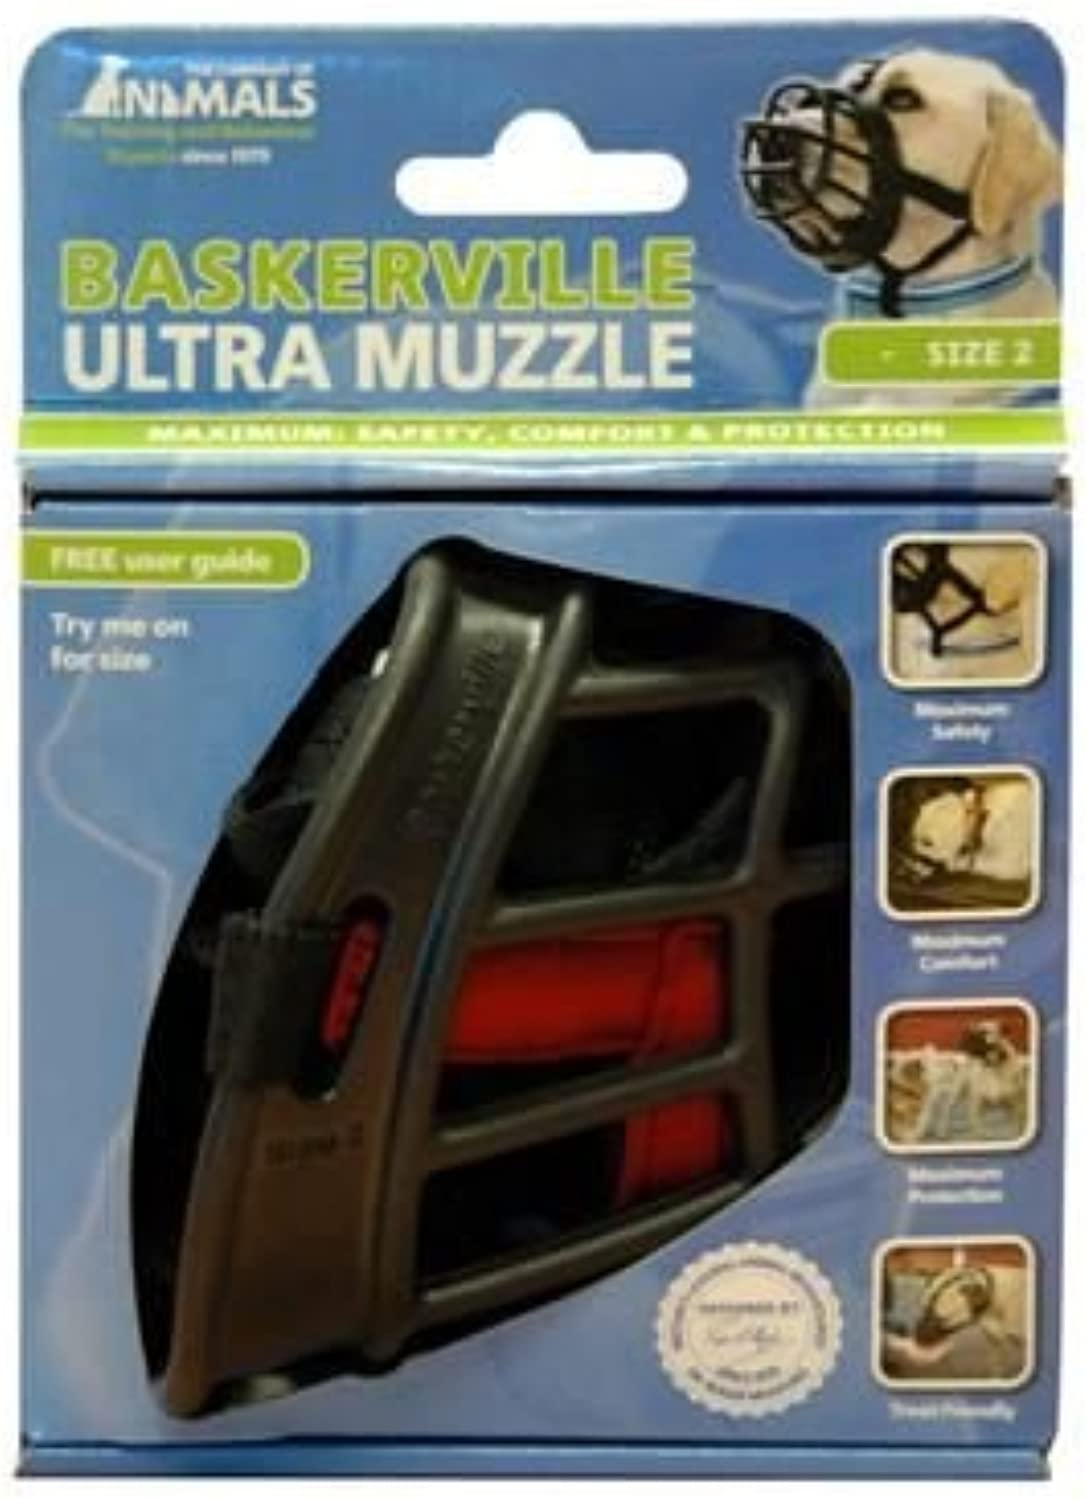 (2 Pack) Co. Of Animals  Baskerville Ultra Muzzle Size 2